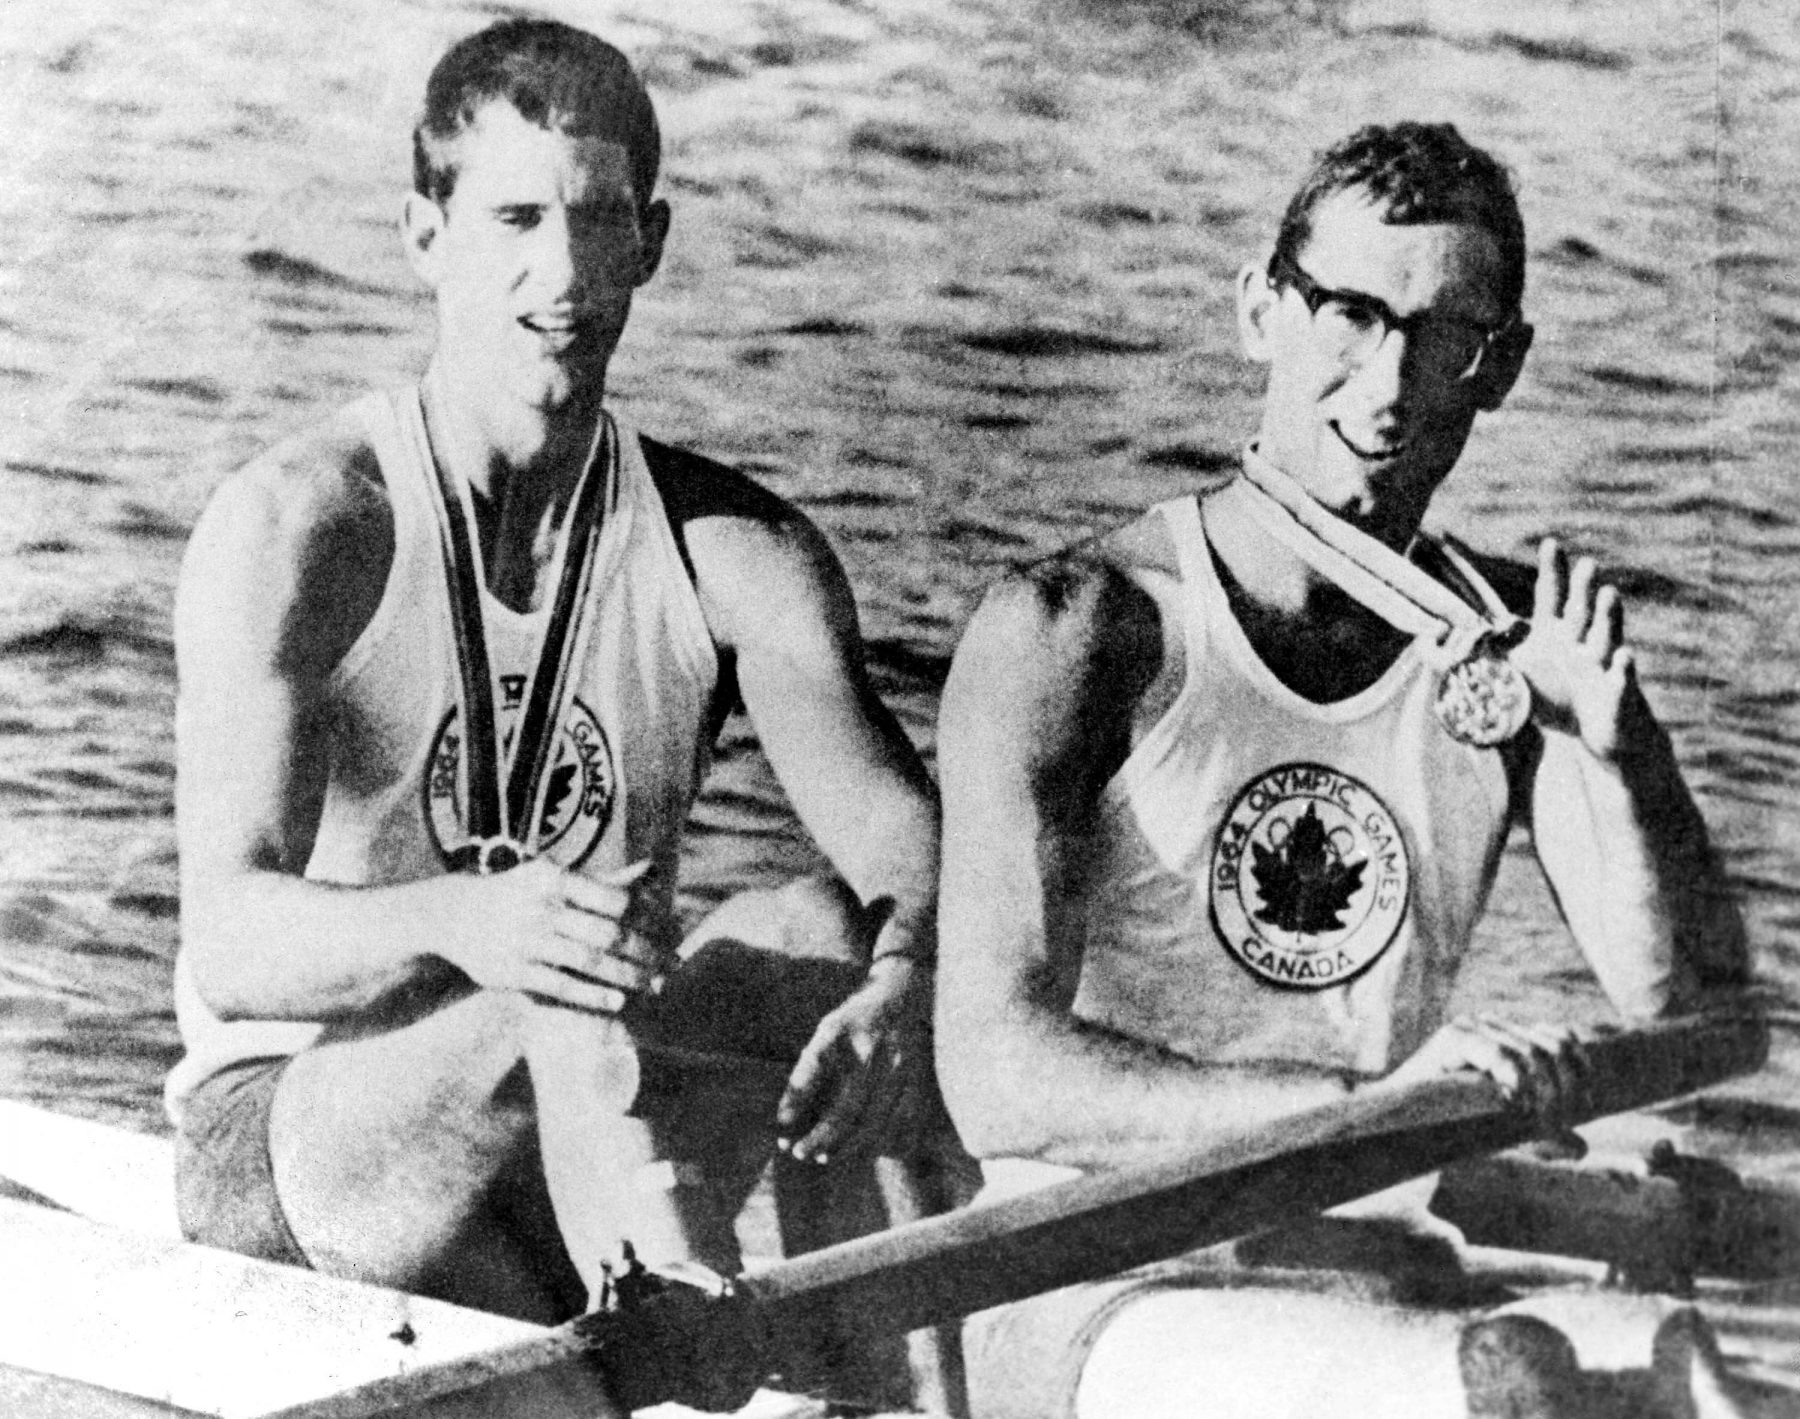 Canada's Roger Jackson and George Hungerford celebrate their gold medal win in the pairs rowing event at the Tokyo 1964 Olympic Games.